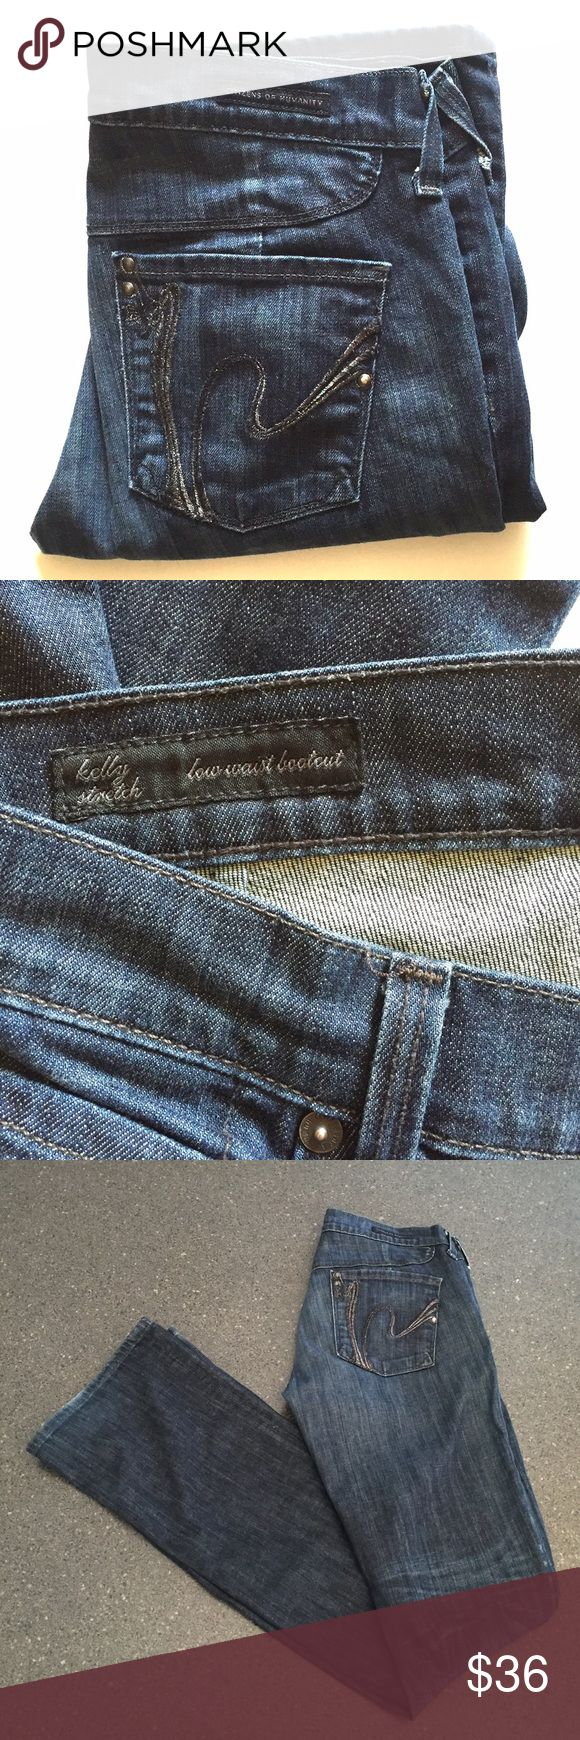 """🌟FLASH SALE 🌟Citizens of Humanity Kelly sz 28 Citizens of Humanity Kelly stretch low waist boot cut jeans. Has slight fraying and wear at hem as seen in photo #4. 98% cotton 2% elastane. Inseam 33.5"""" leg opening 8"""". Sale price is firm unless bundled. 🌟 Citizens of Humanity Jeans Boot Cut"""